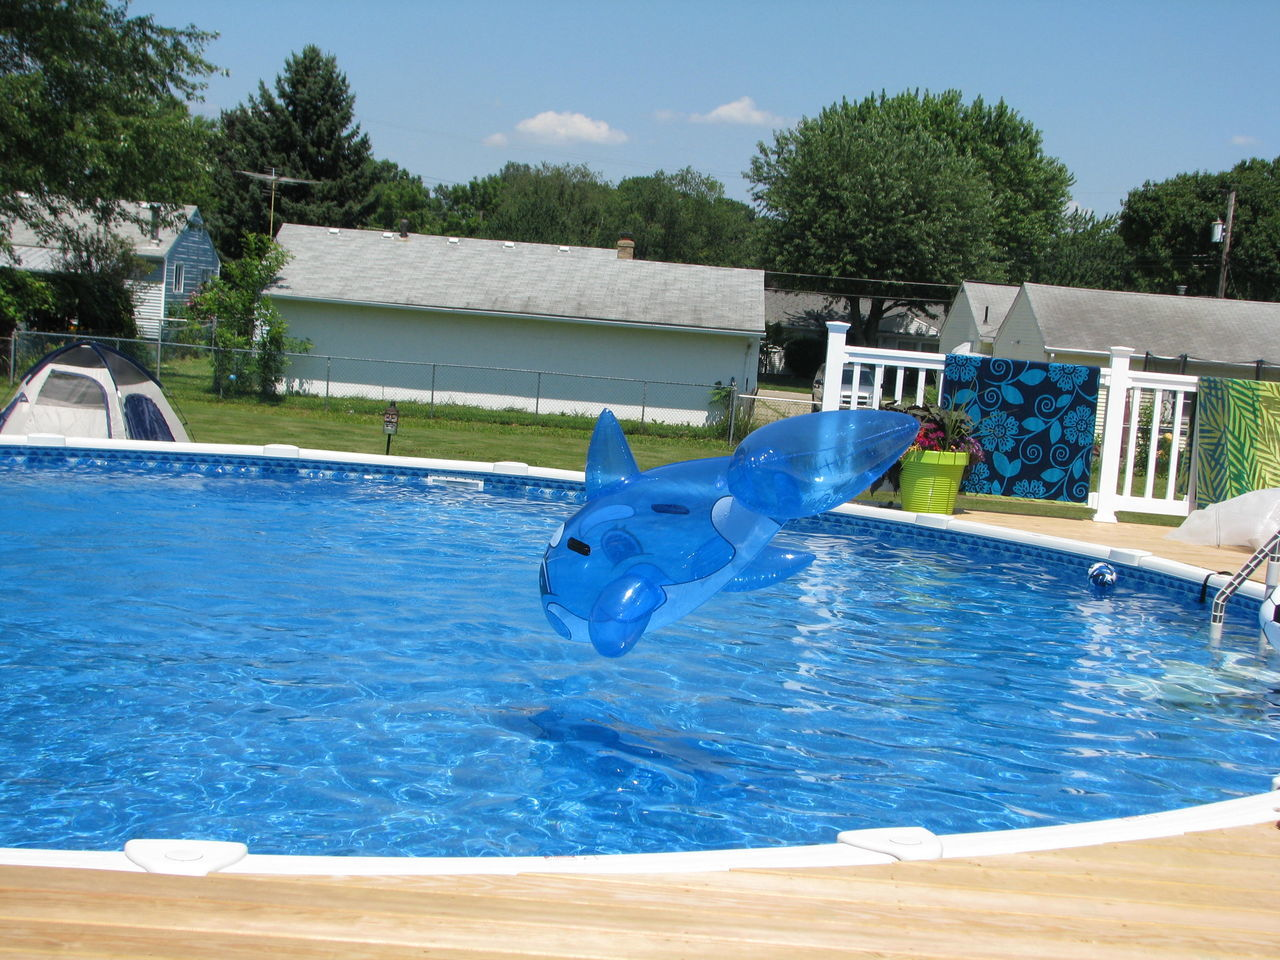 swimming pool, water, blue, tree, day, outdoors, jumping, no people, sunlight, swimming, sky, architecture, nature, water slide